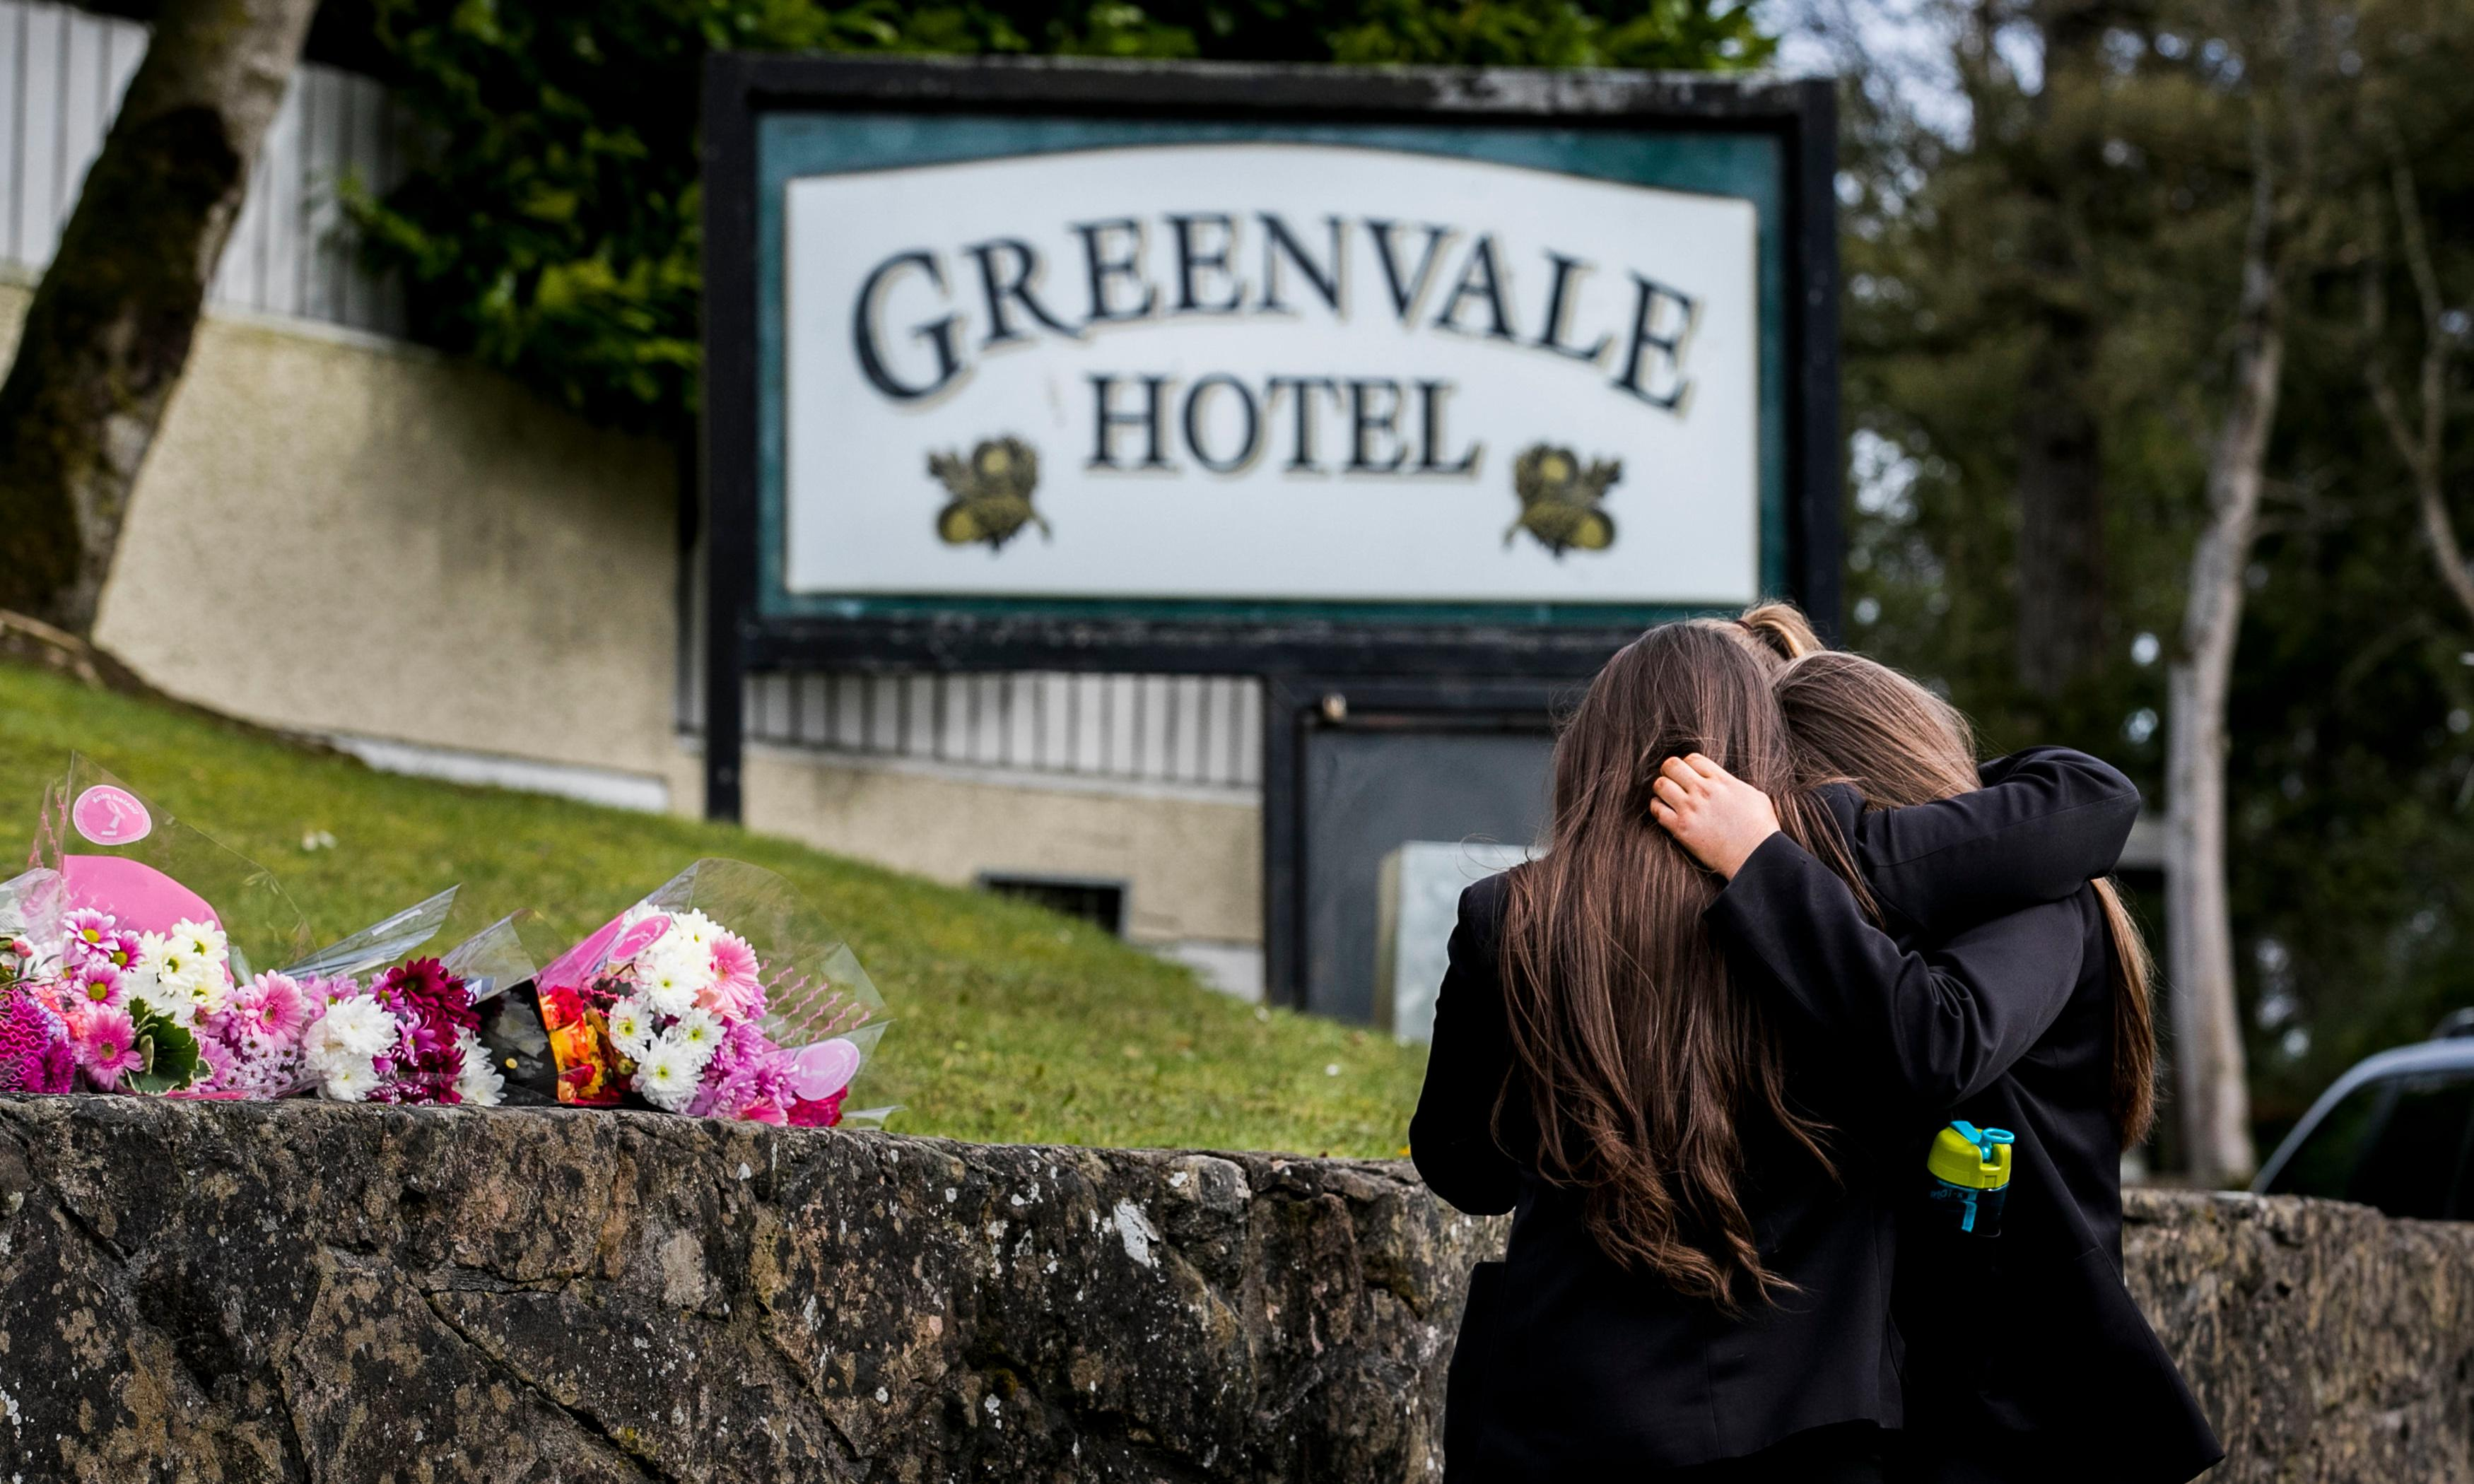 Hotel owner arrested after fatal crush at St Patrick's Day disco